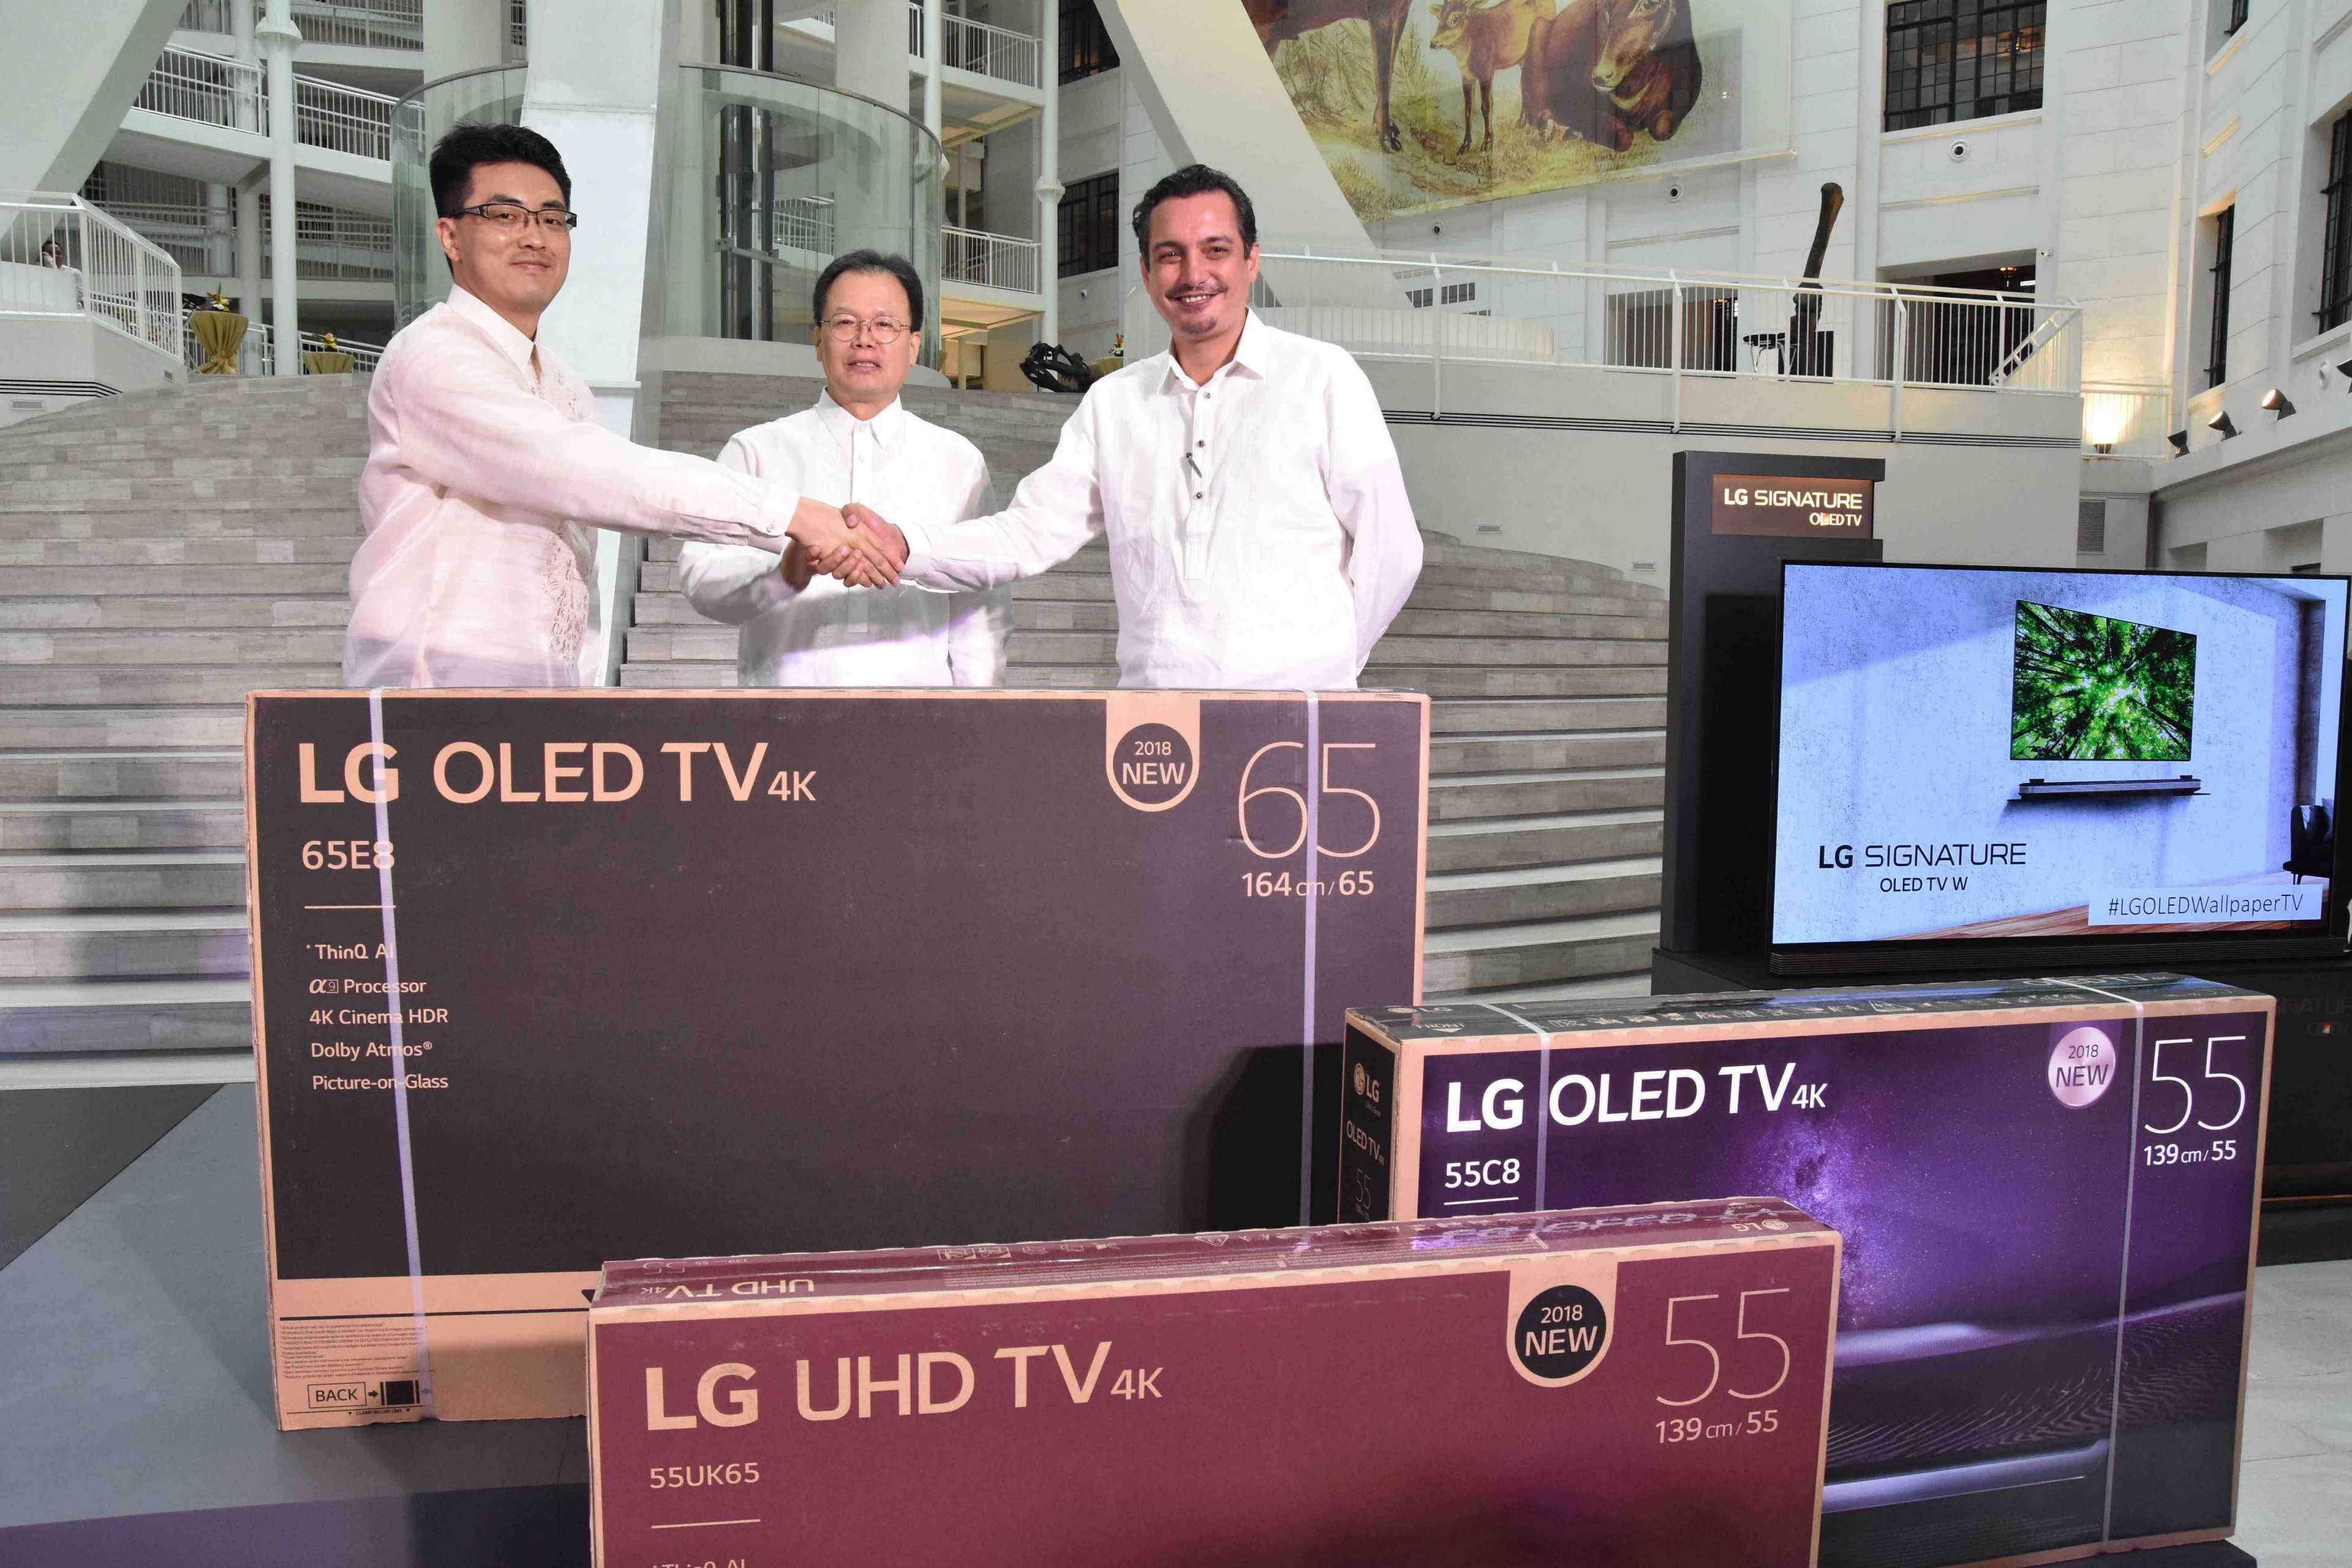 LG Gifts National Museum of Natural History with The World #1 OLED TV